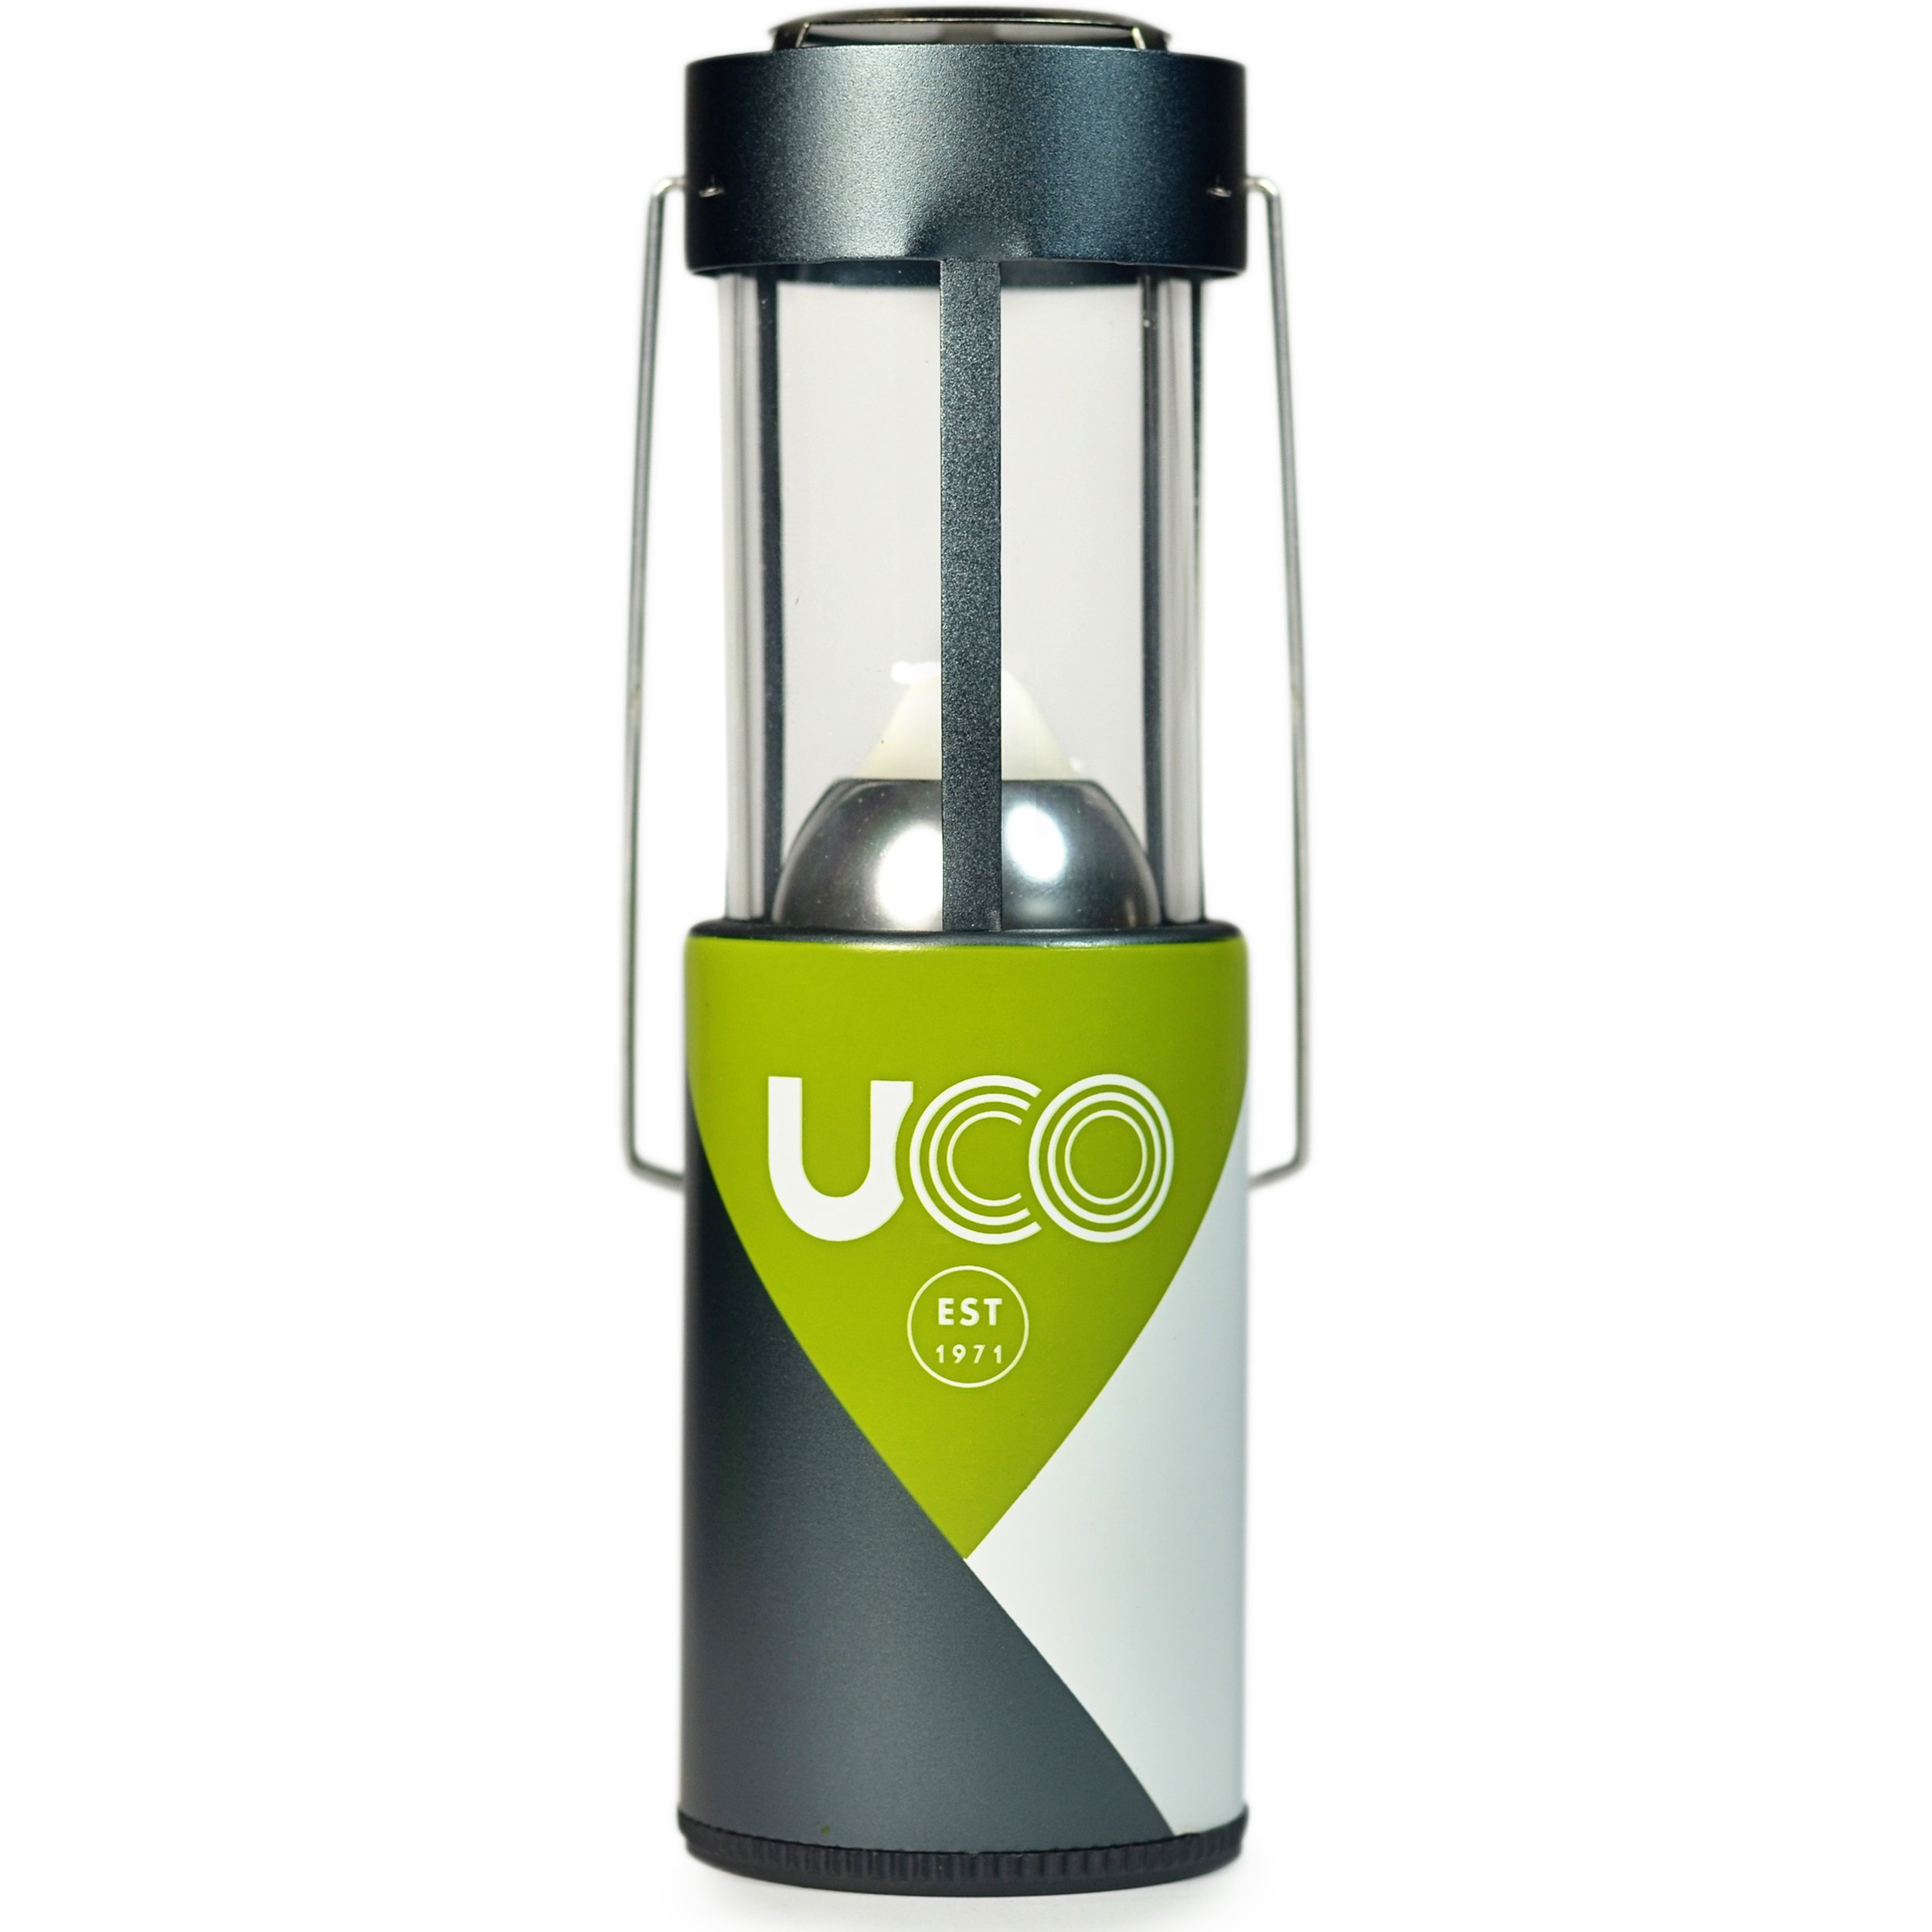 UCO Original Collapsible Candle Lantern, Wild